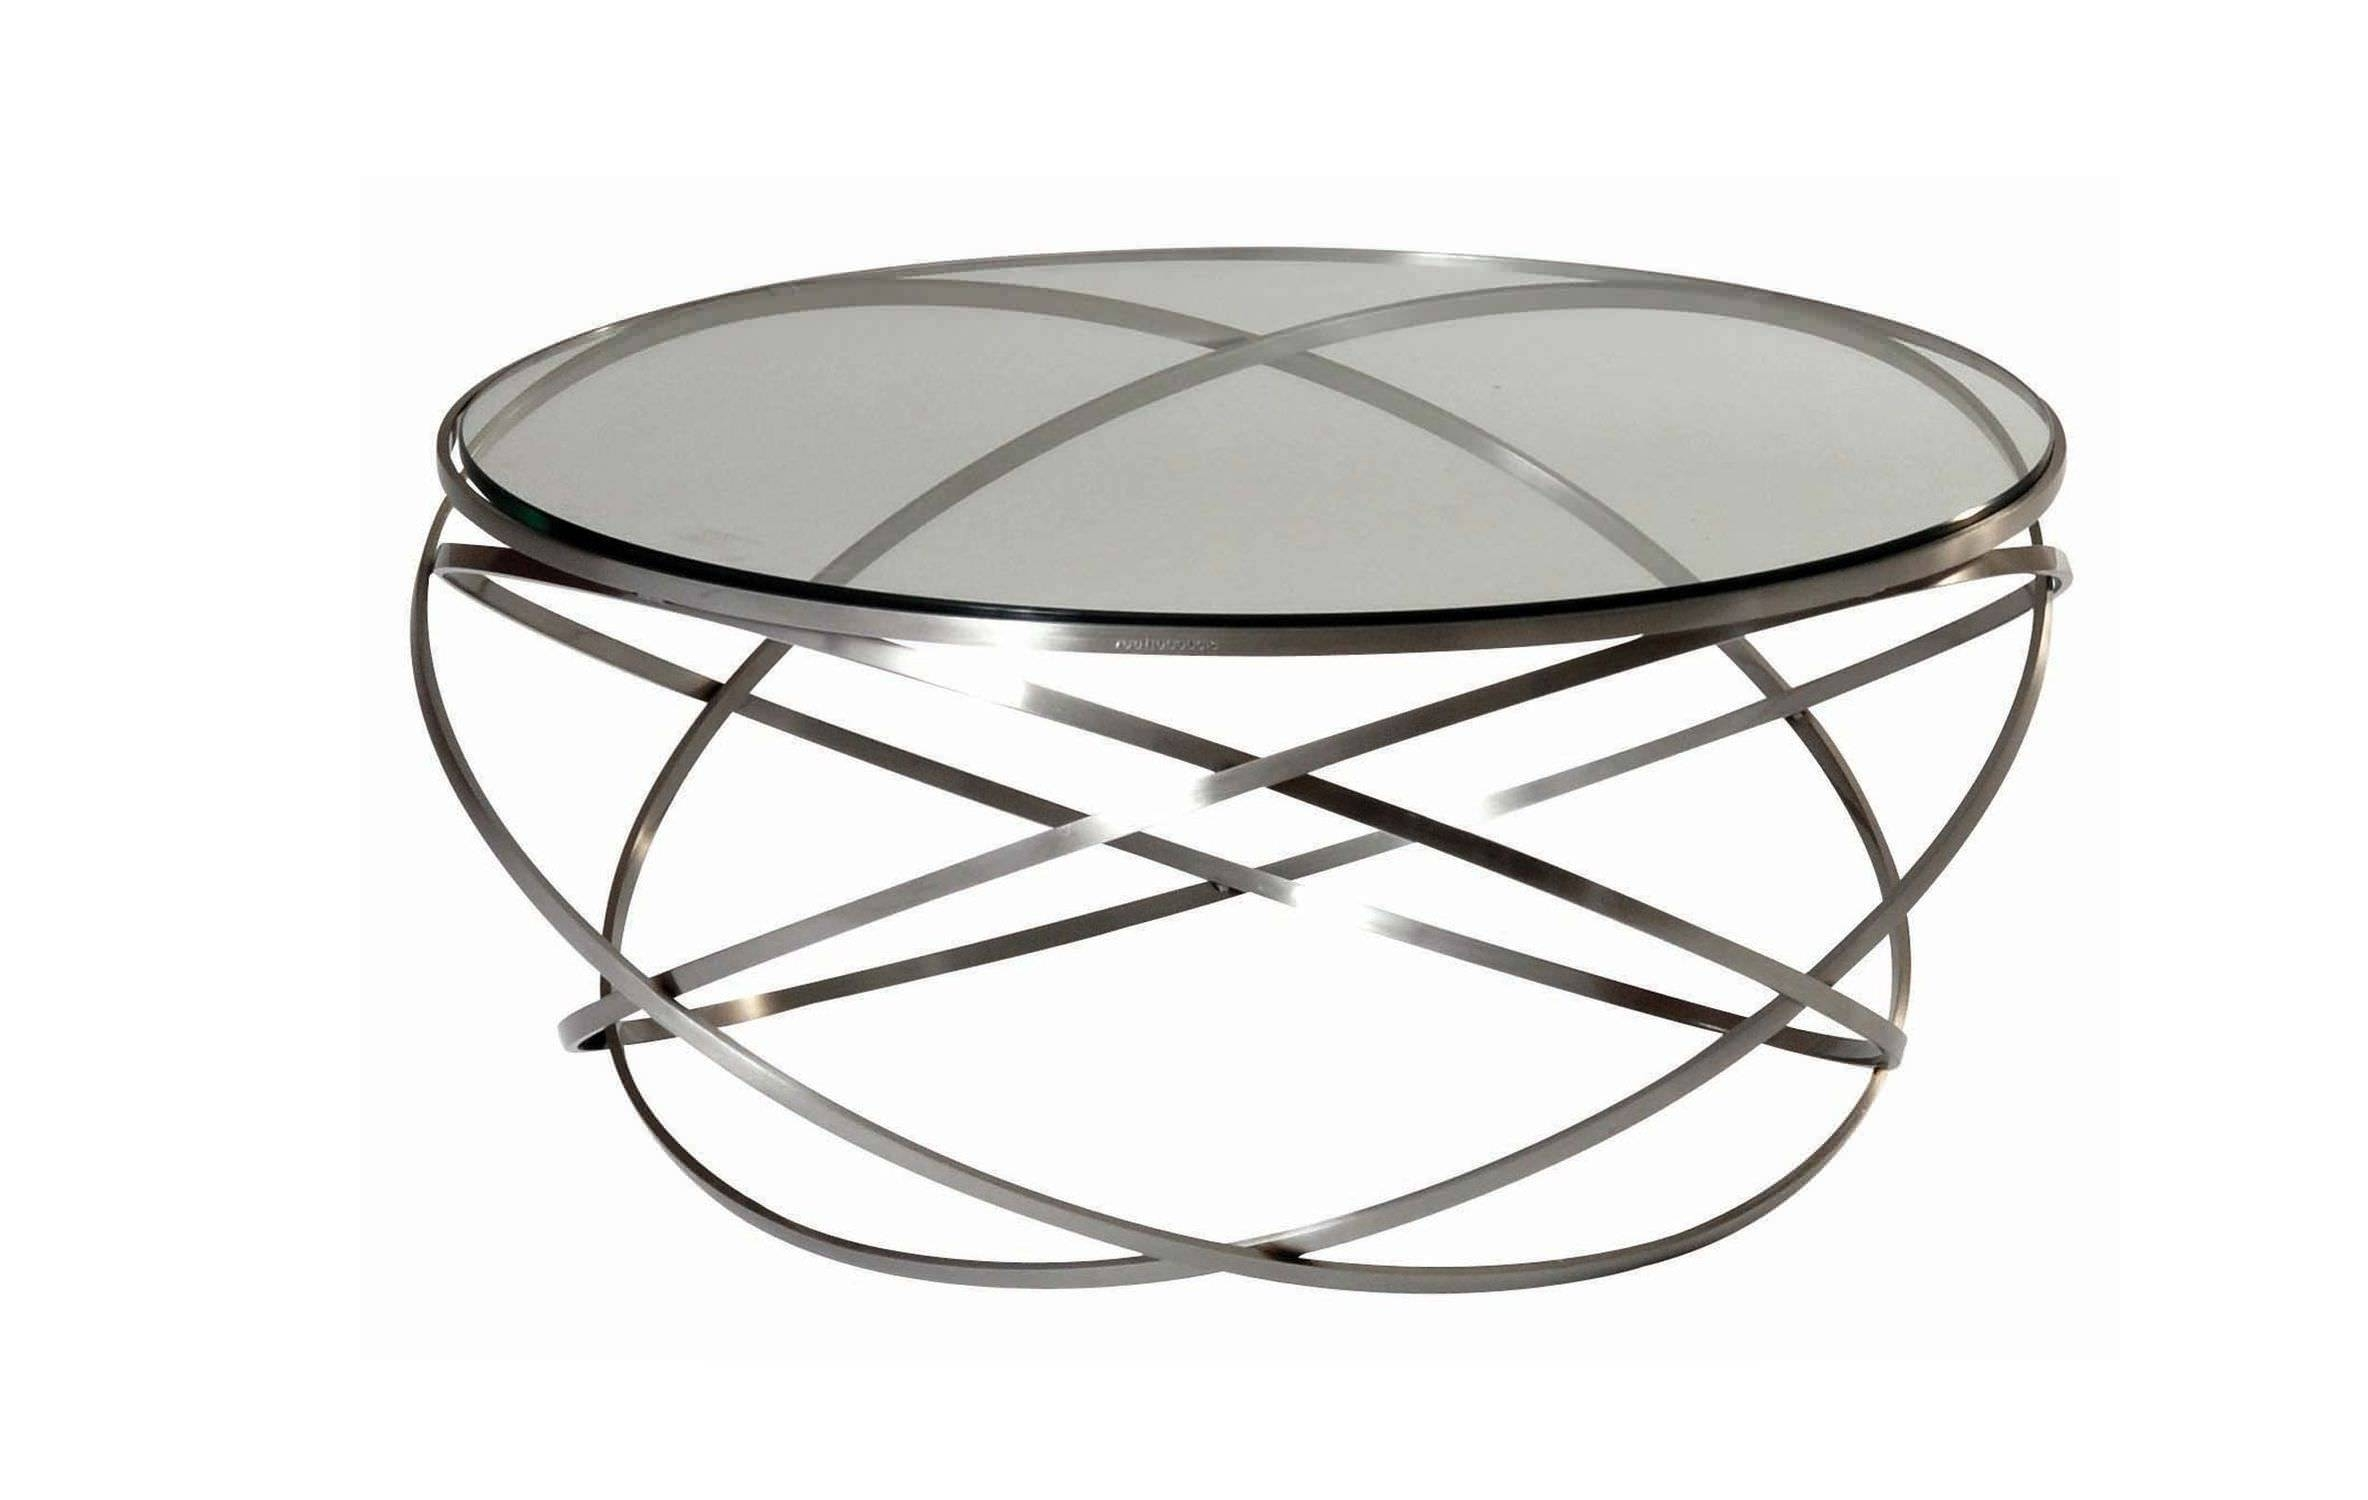 Contemporary Coffee Table / Glass / Steel / Round – Evolcédric With Steel And Glass Coffee Tables (View 11 of 30)